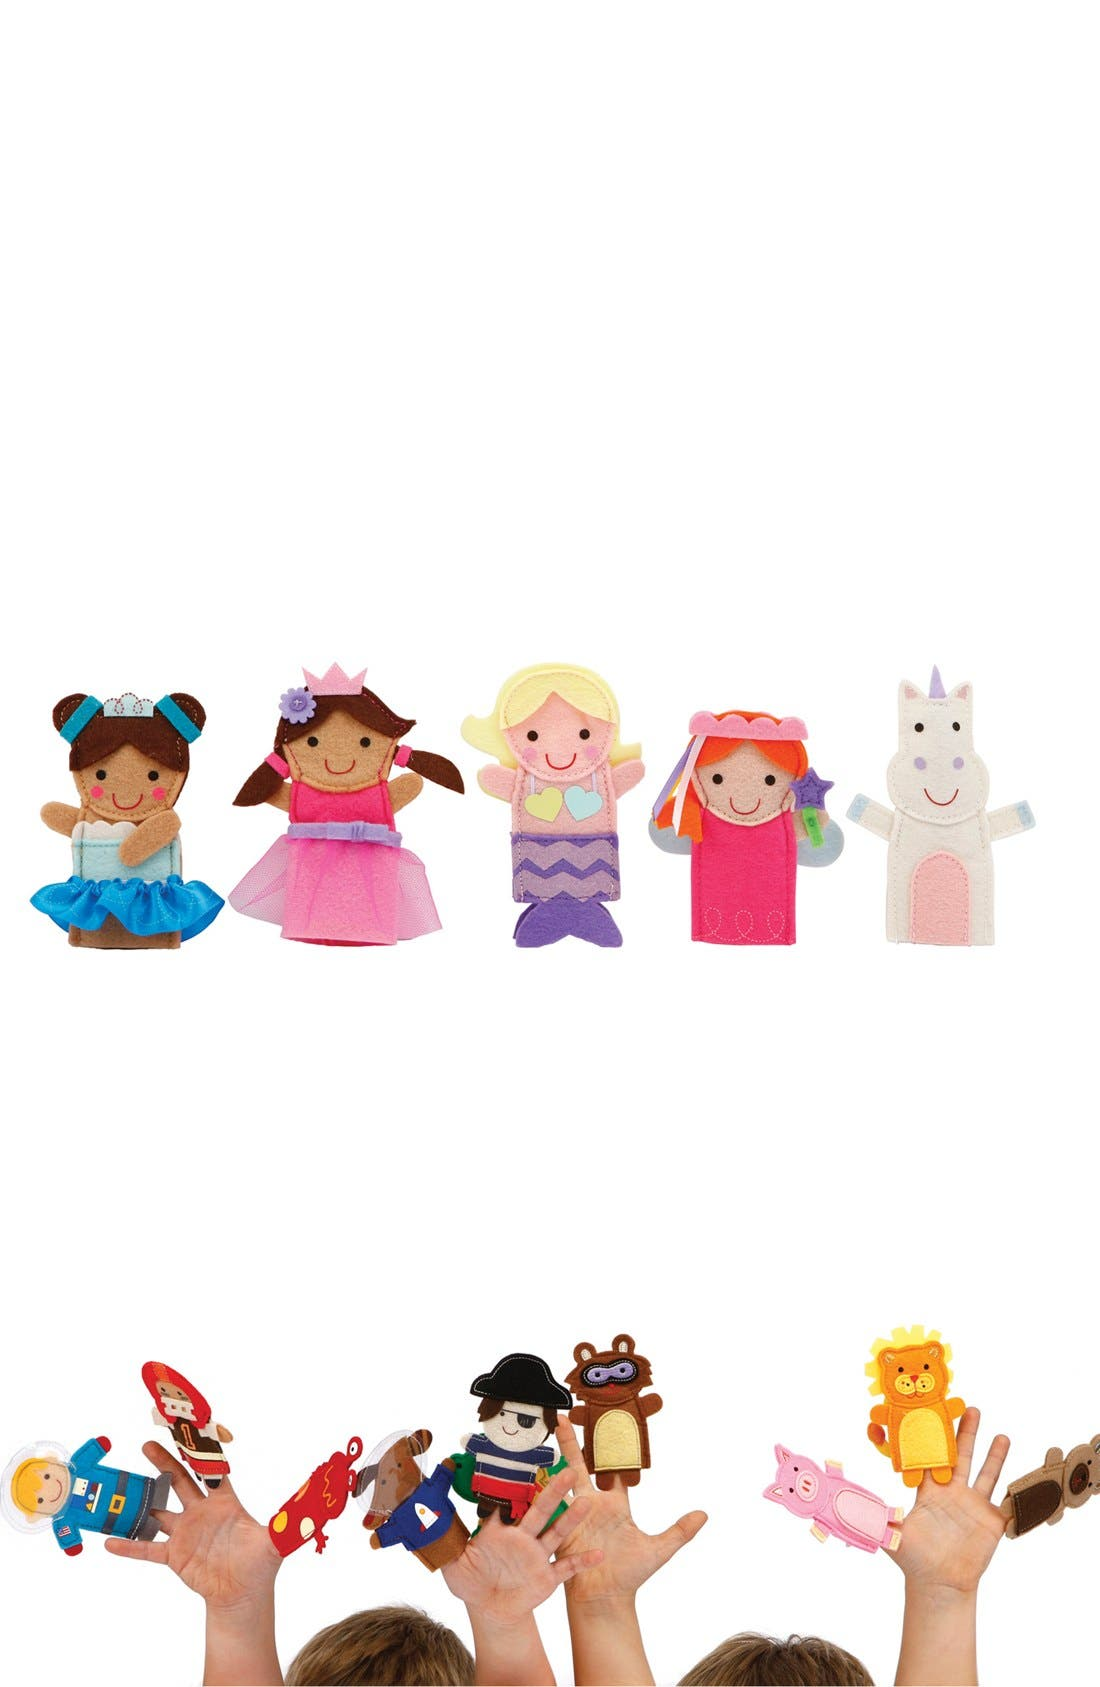 Alternate Image 1 Selected - C.R. Gibson 'Fantasy Friends' Finger Puppets (Set of 5)